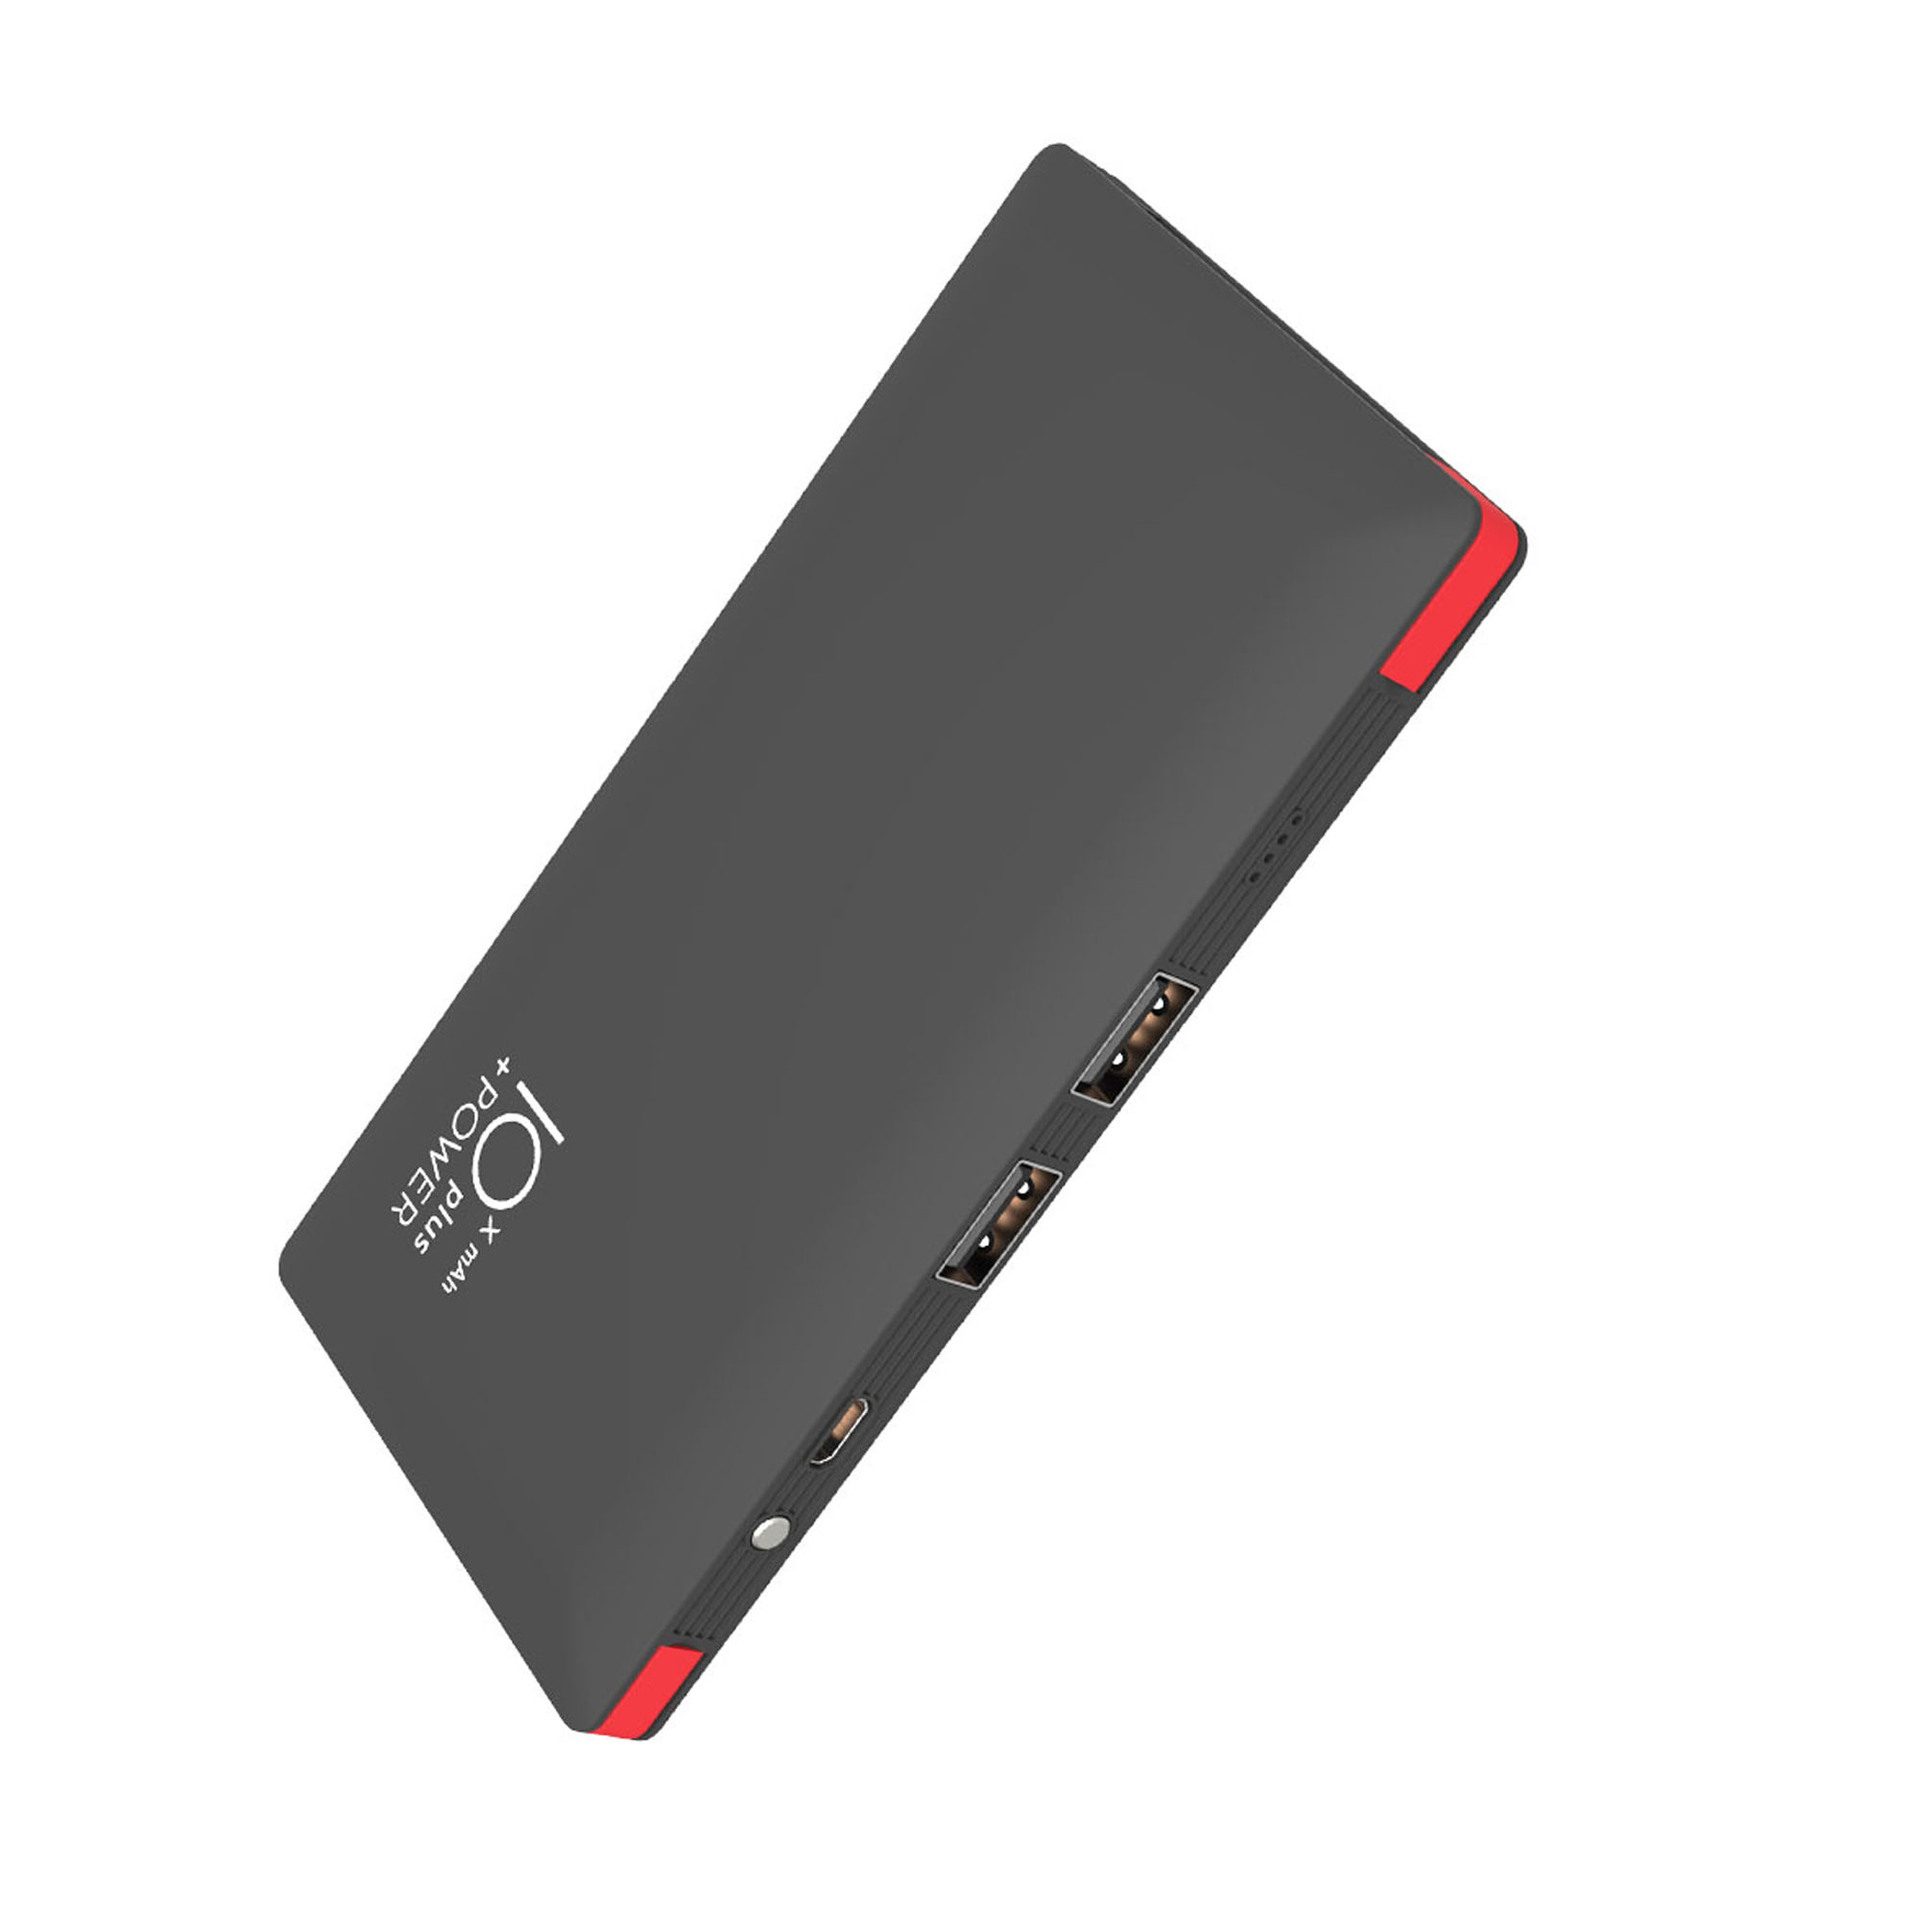 2019 New Design Ultra Slim Card Powerbank 10000 mah,  Custom Logo Power Bank With Built in Cables Wallet Power Bank